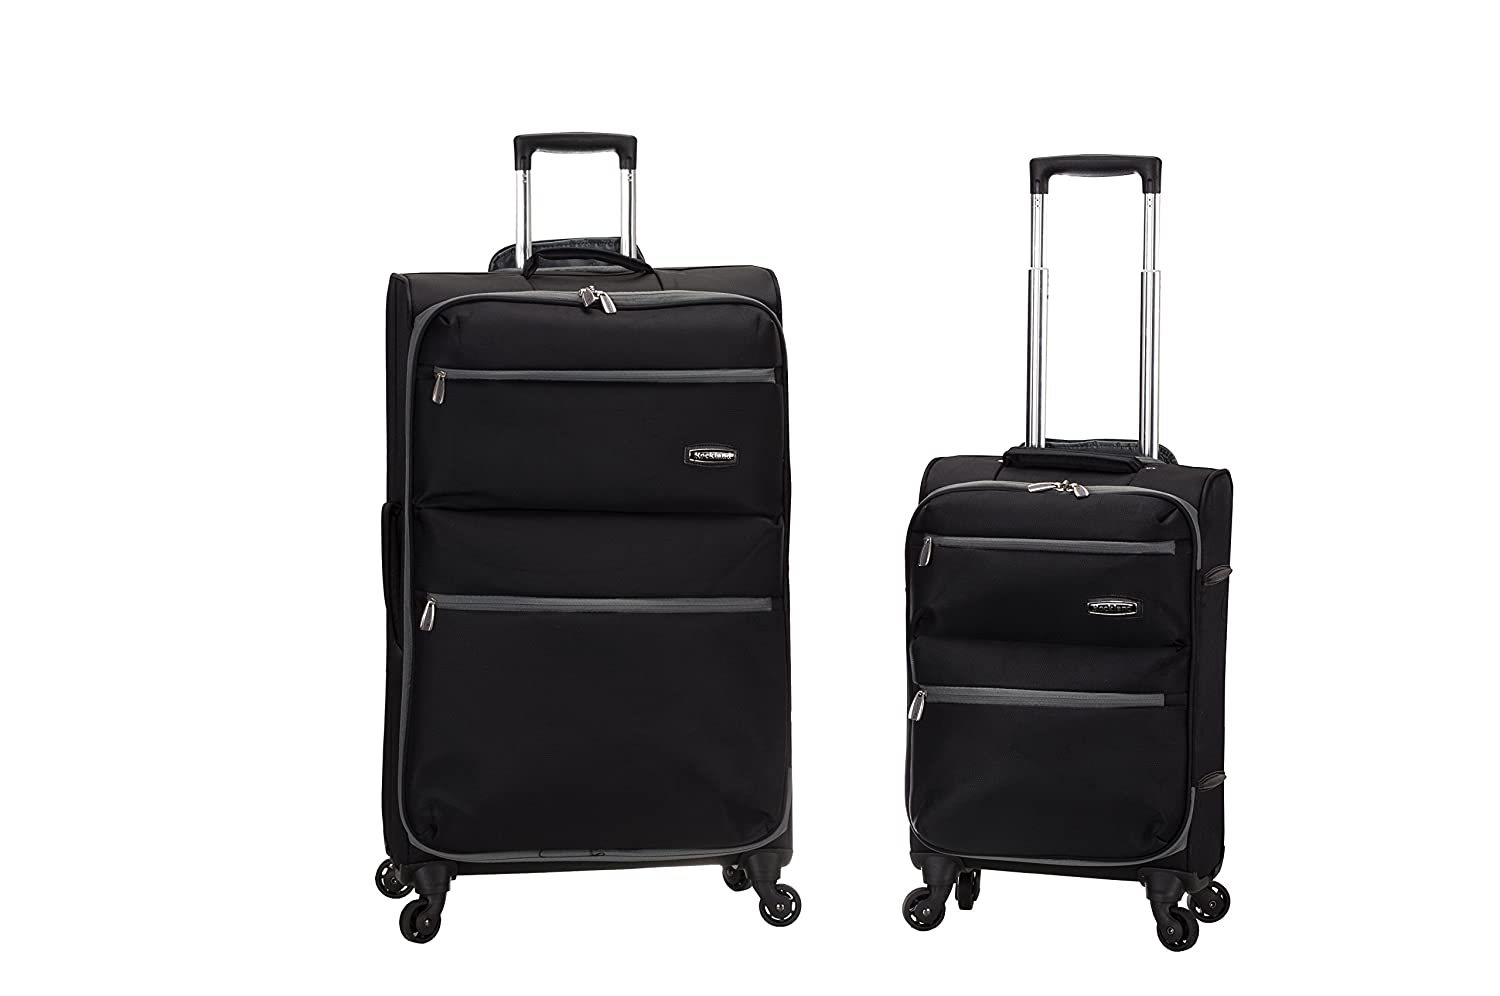 Rockland Gravity 2 Pc Light Weight Luggage Set, Black Fox Luggage F231-BLACK